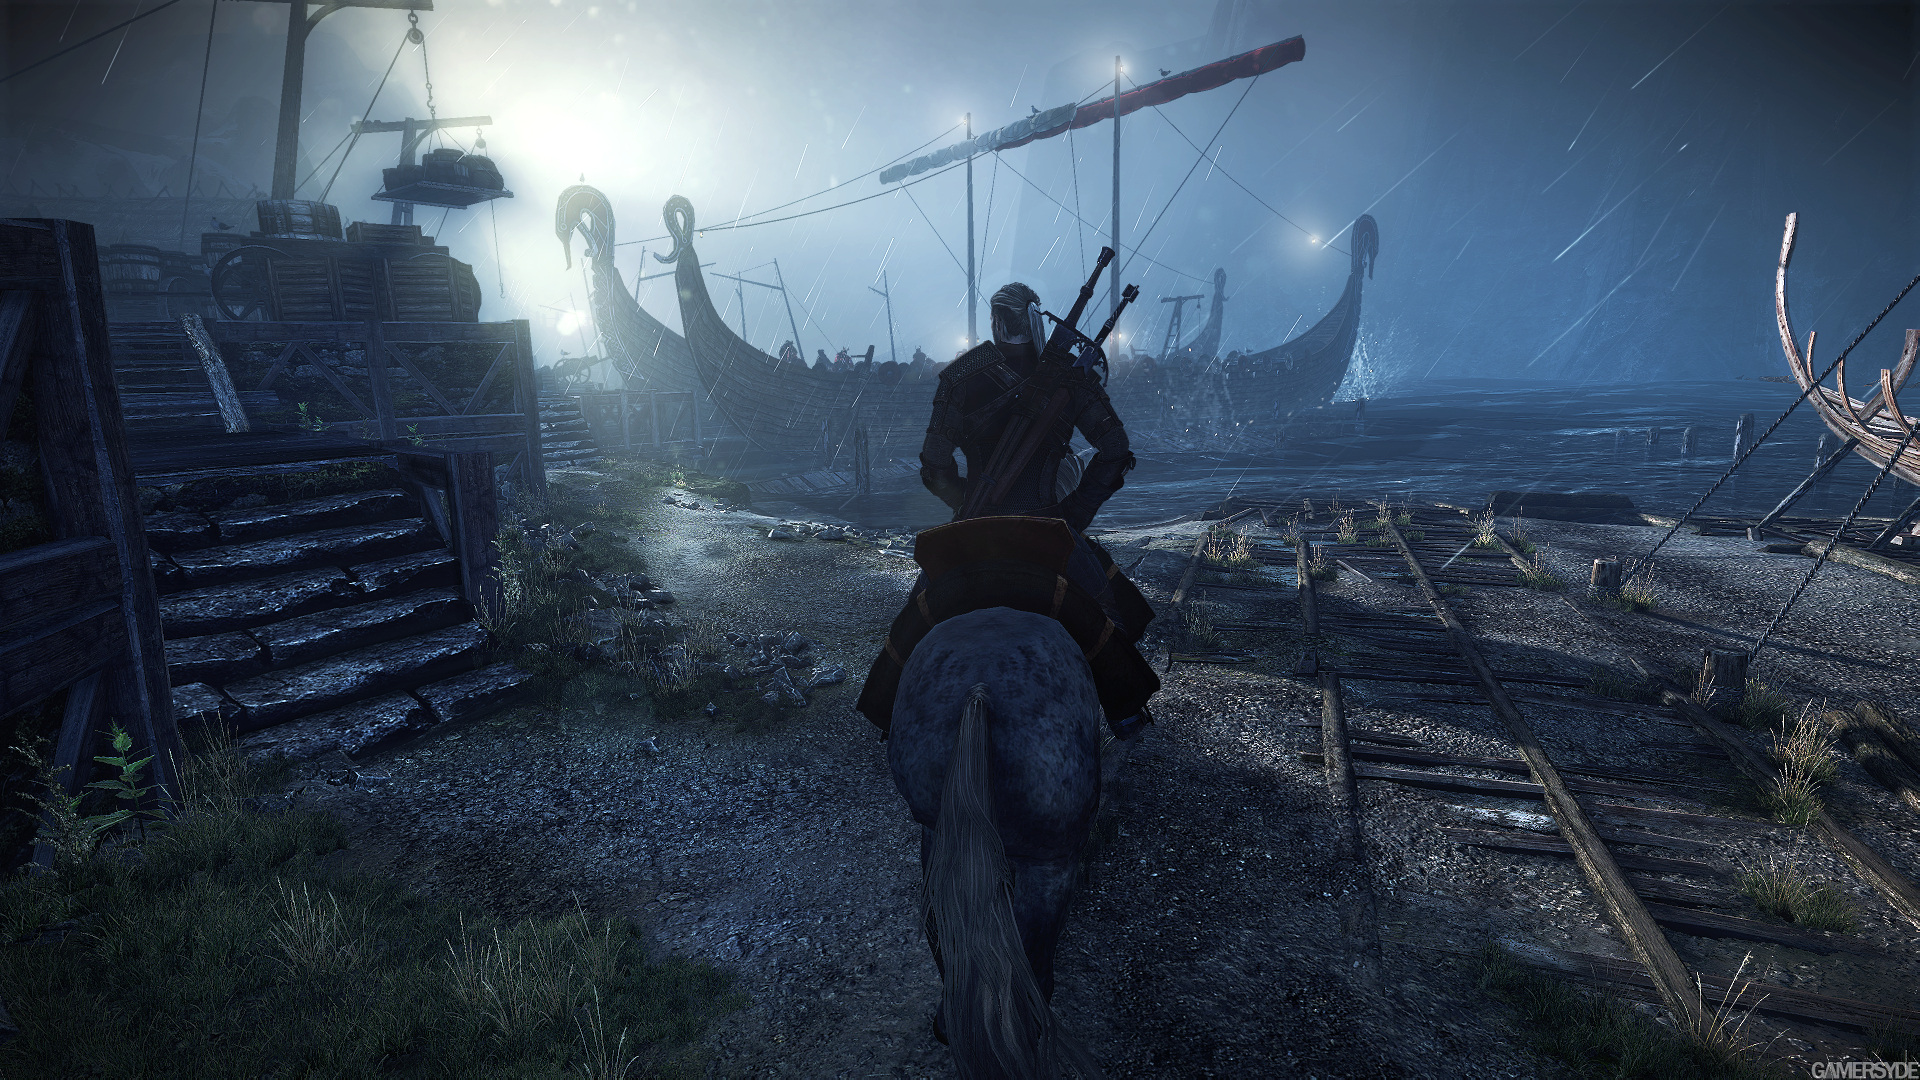 Witcher 3 Image_the_witcher_3_wild_hunt-22370-2651_0004